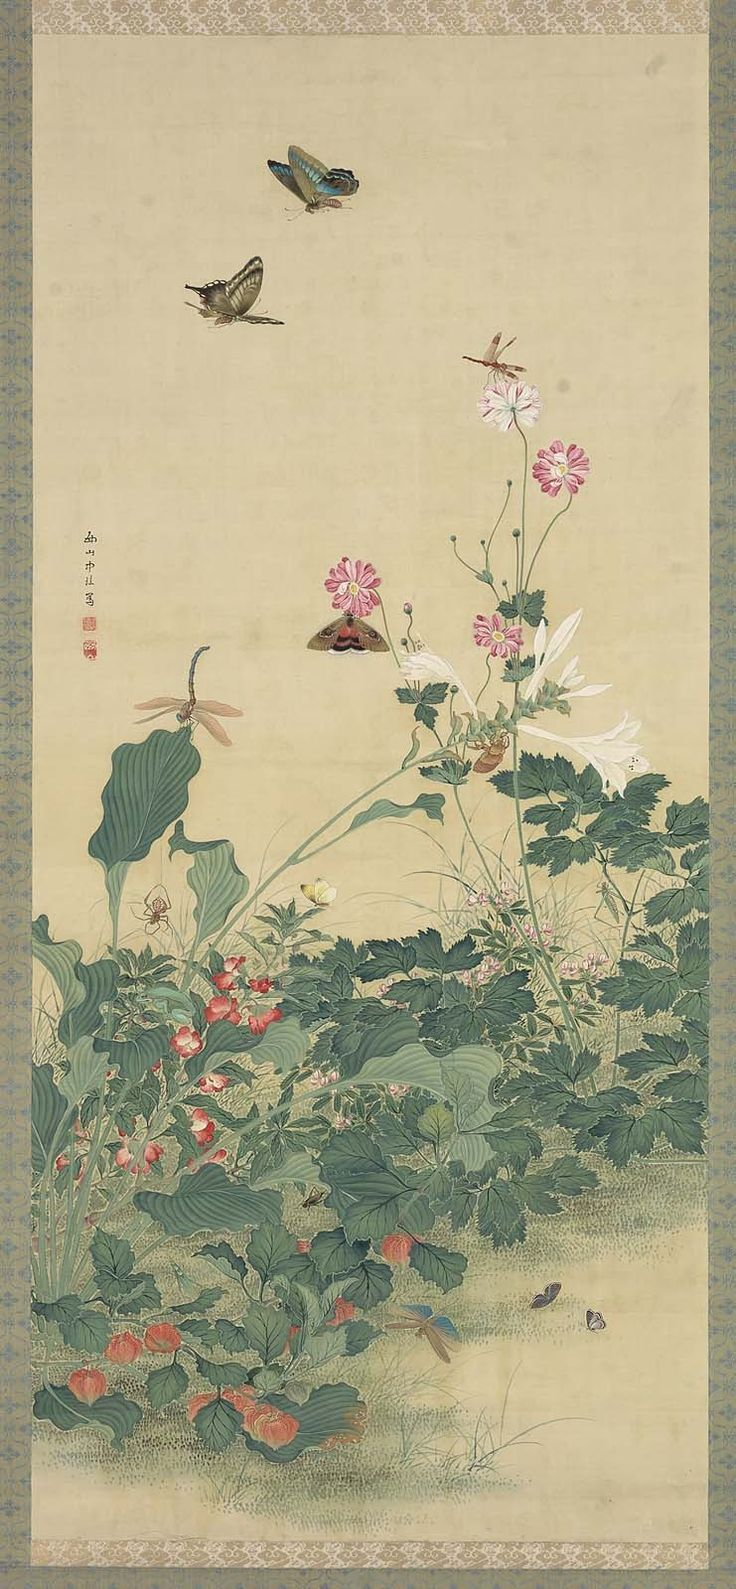 'Flowers, Butterflies and Other Insects.' Ink, colour and gold on silk by Nishiyama Chukei Image and text courtesy MFA Boston.